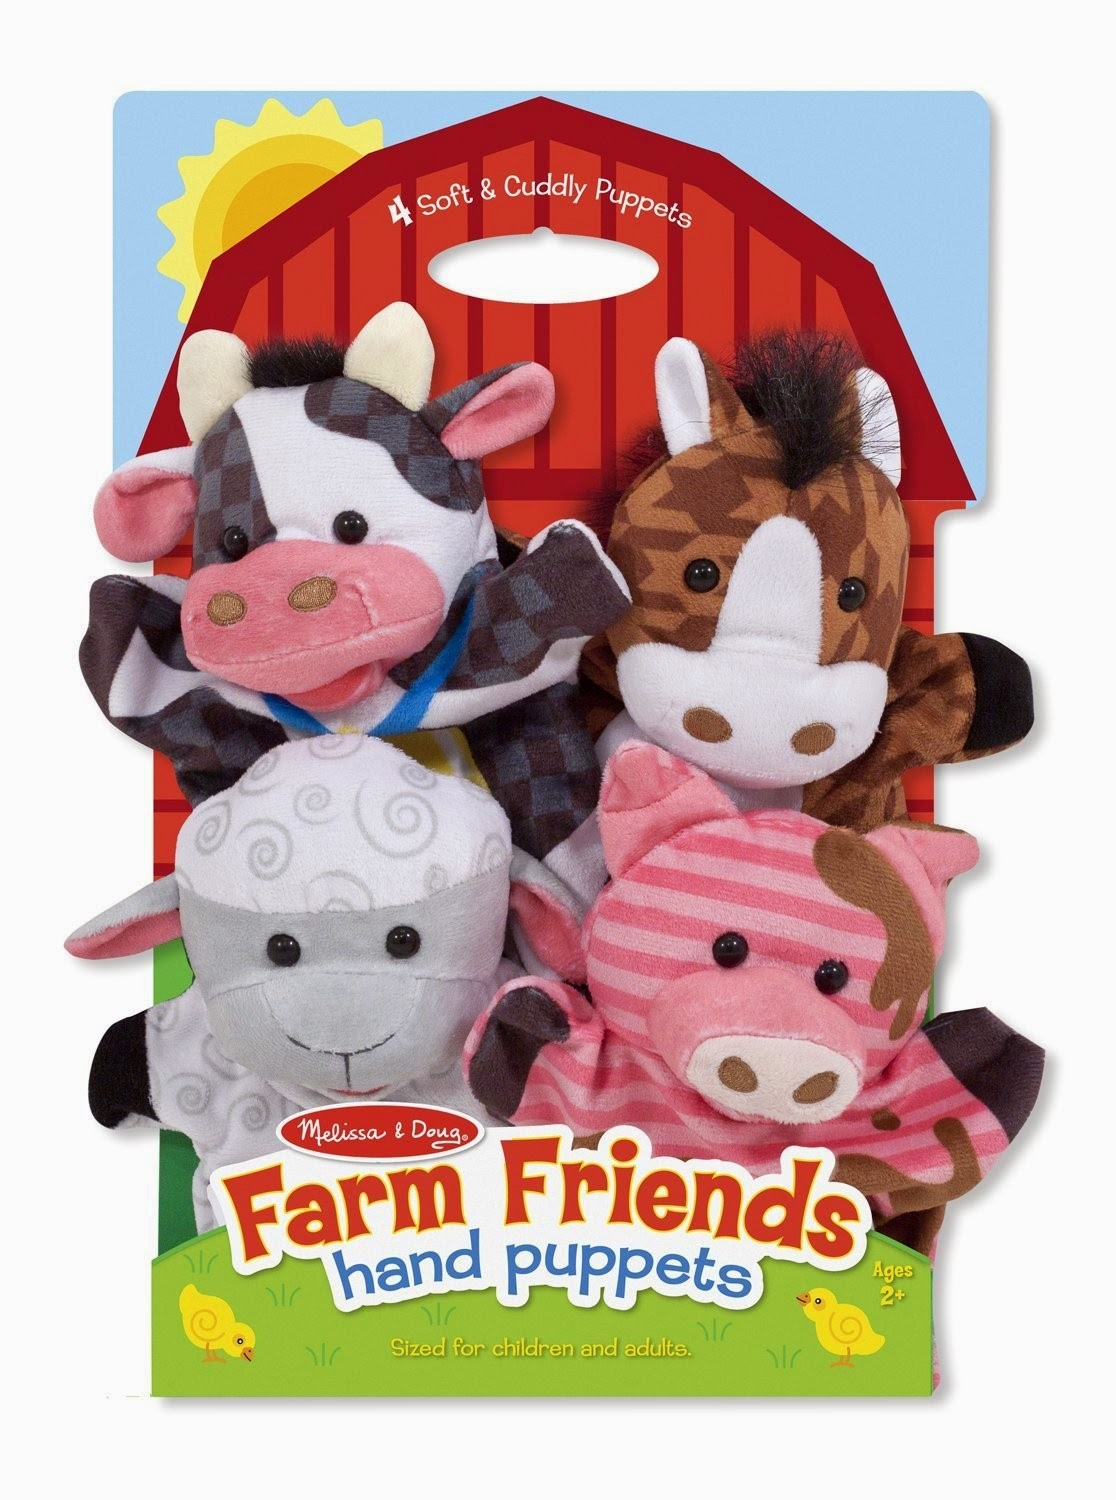 http://www.amazon.com/Melissa-Doug-Farm-Friends-Puppets/dp/B00JBIY0MG/ref=sr_1_5?ie=UTF8&qid=1429807460&sr=8-5&keywords=puppet